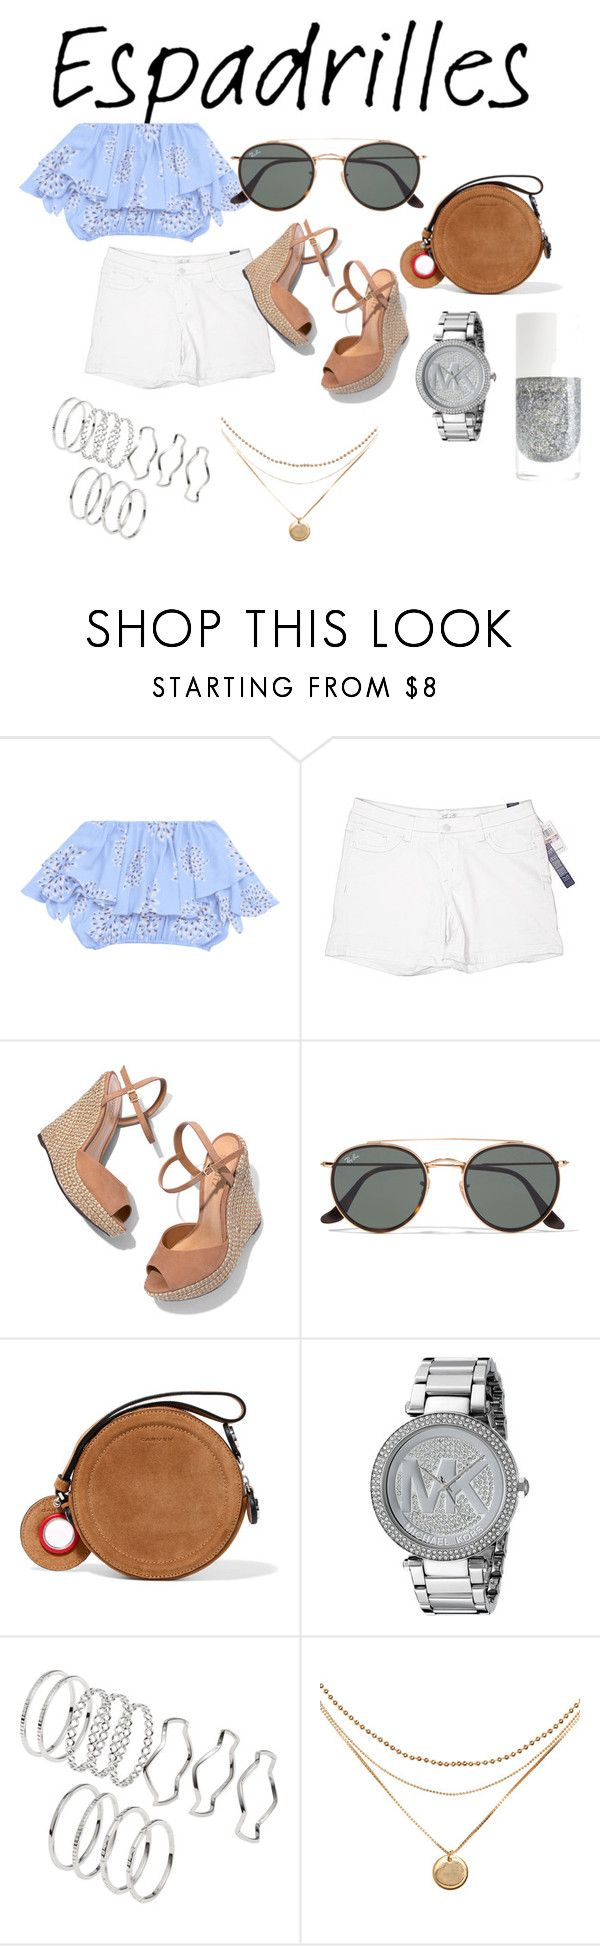 """""""The Shoes We Never Wear With Shorts"""" by mandalinaqitrydewi on Polyvore featuring Seven7 Jeans, Schutz, Ray-Ban, Carven and Michael Kors"""